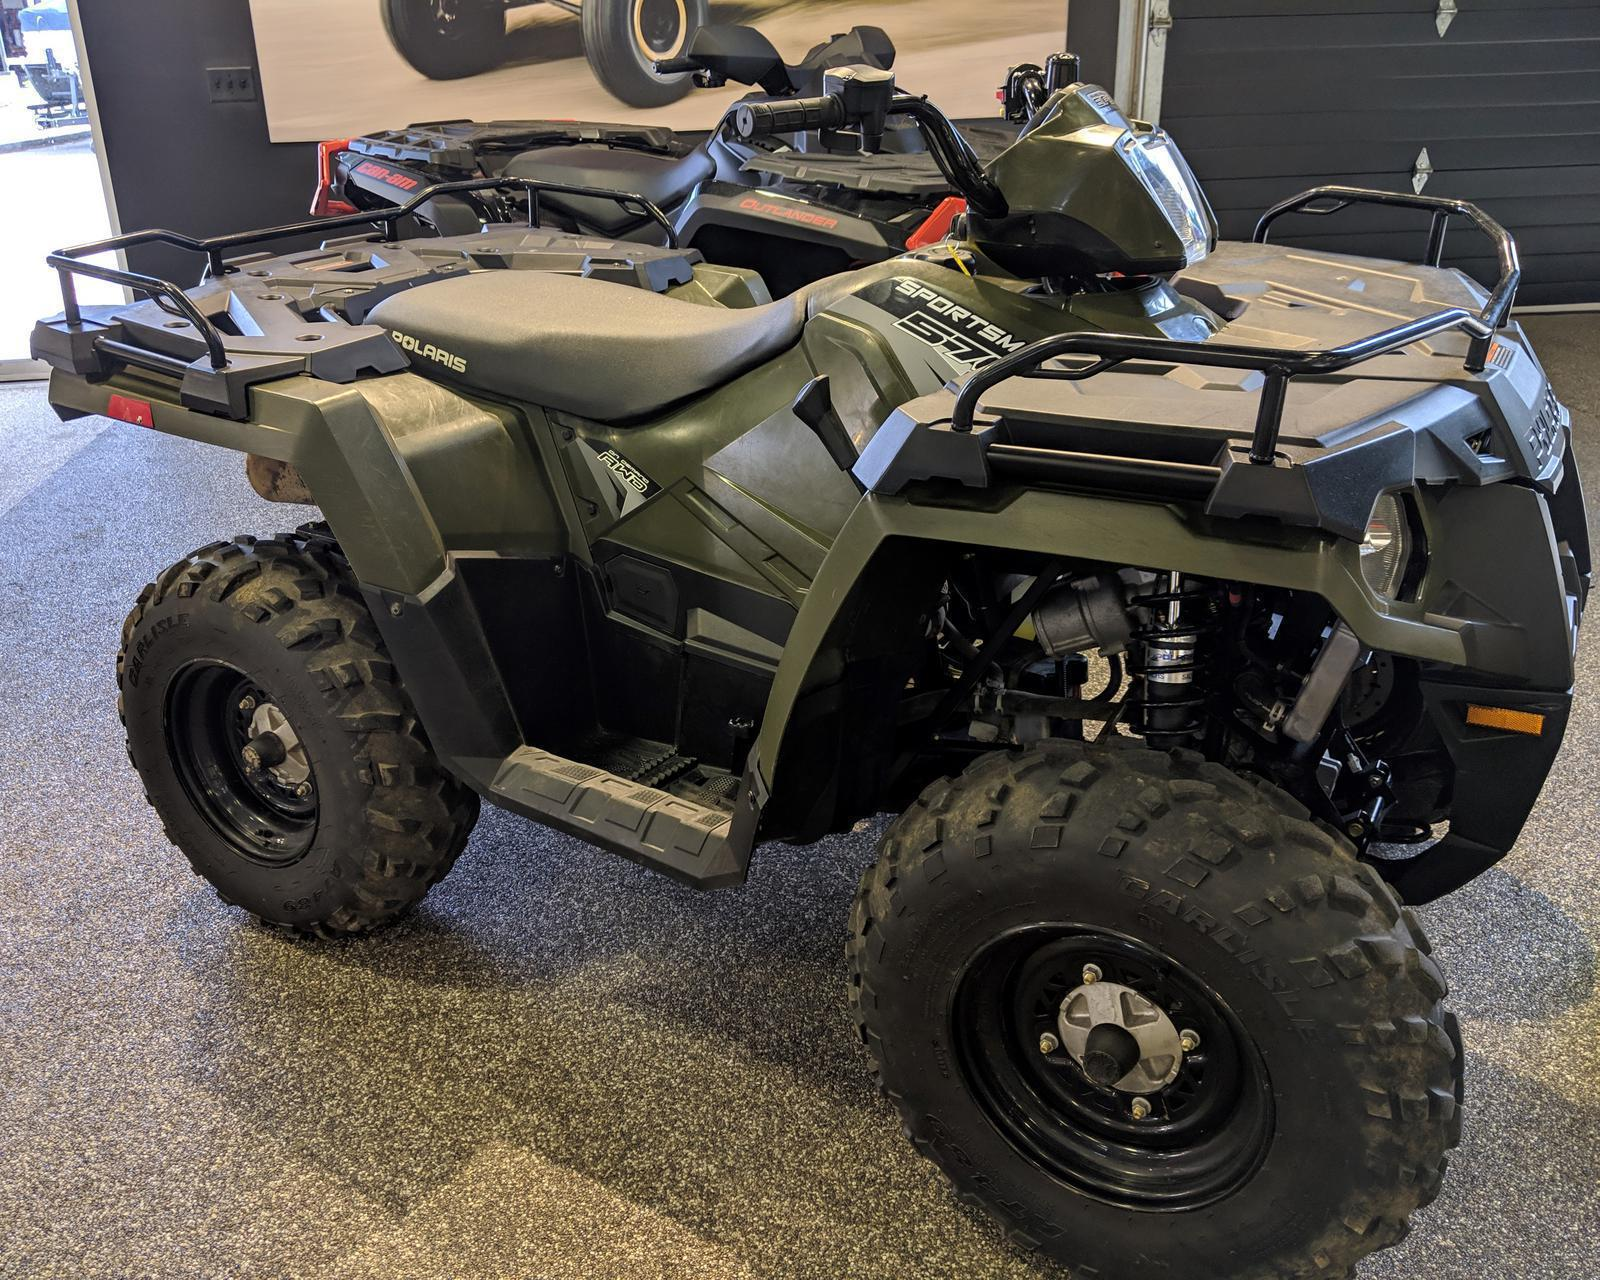 2017 Polaris PWC Atv Polaris Sportsman 570